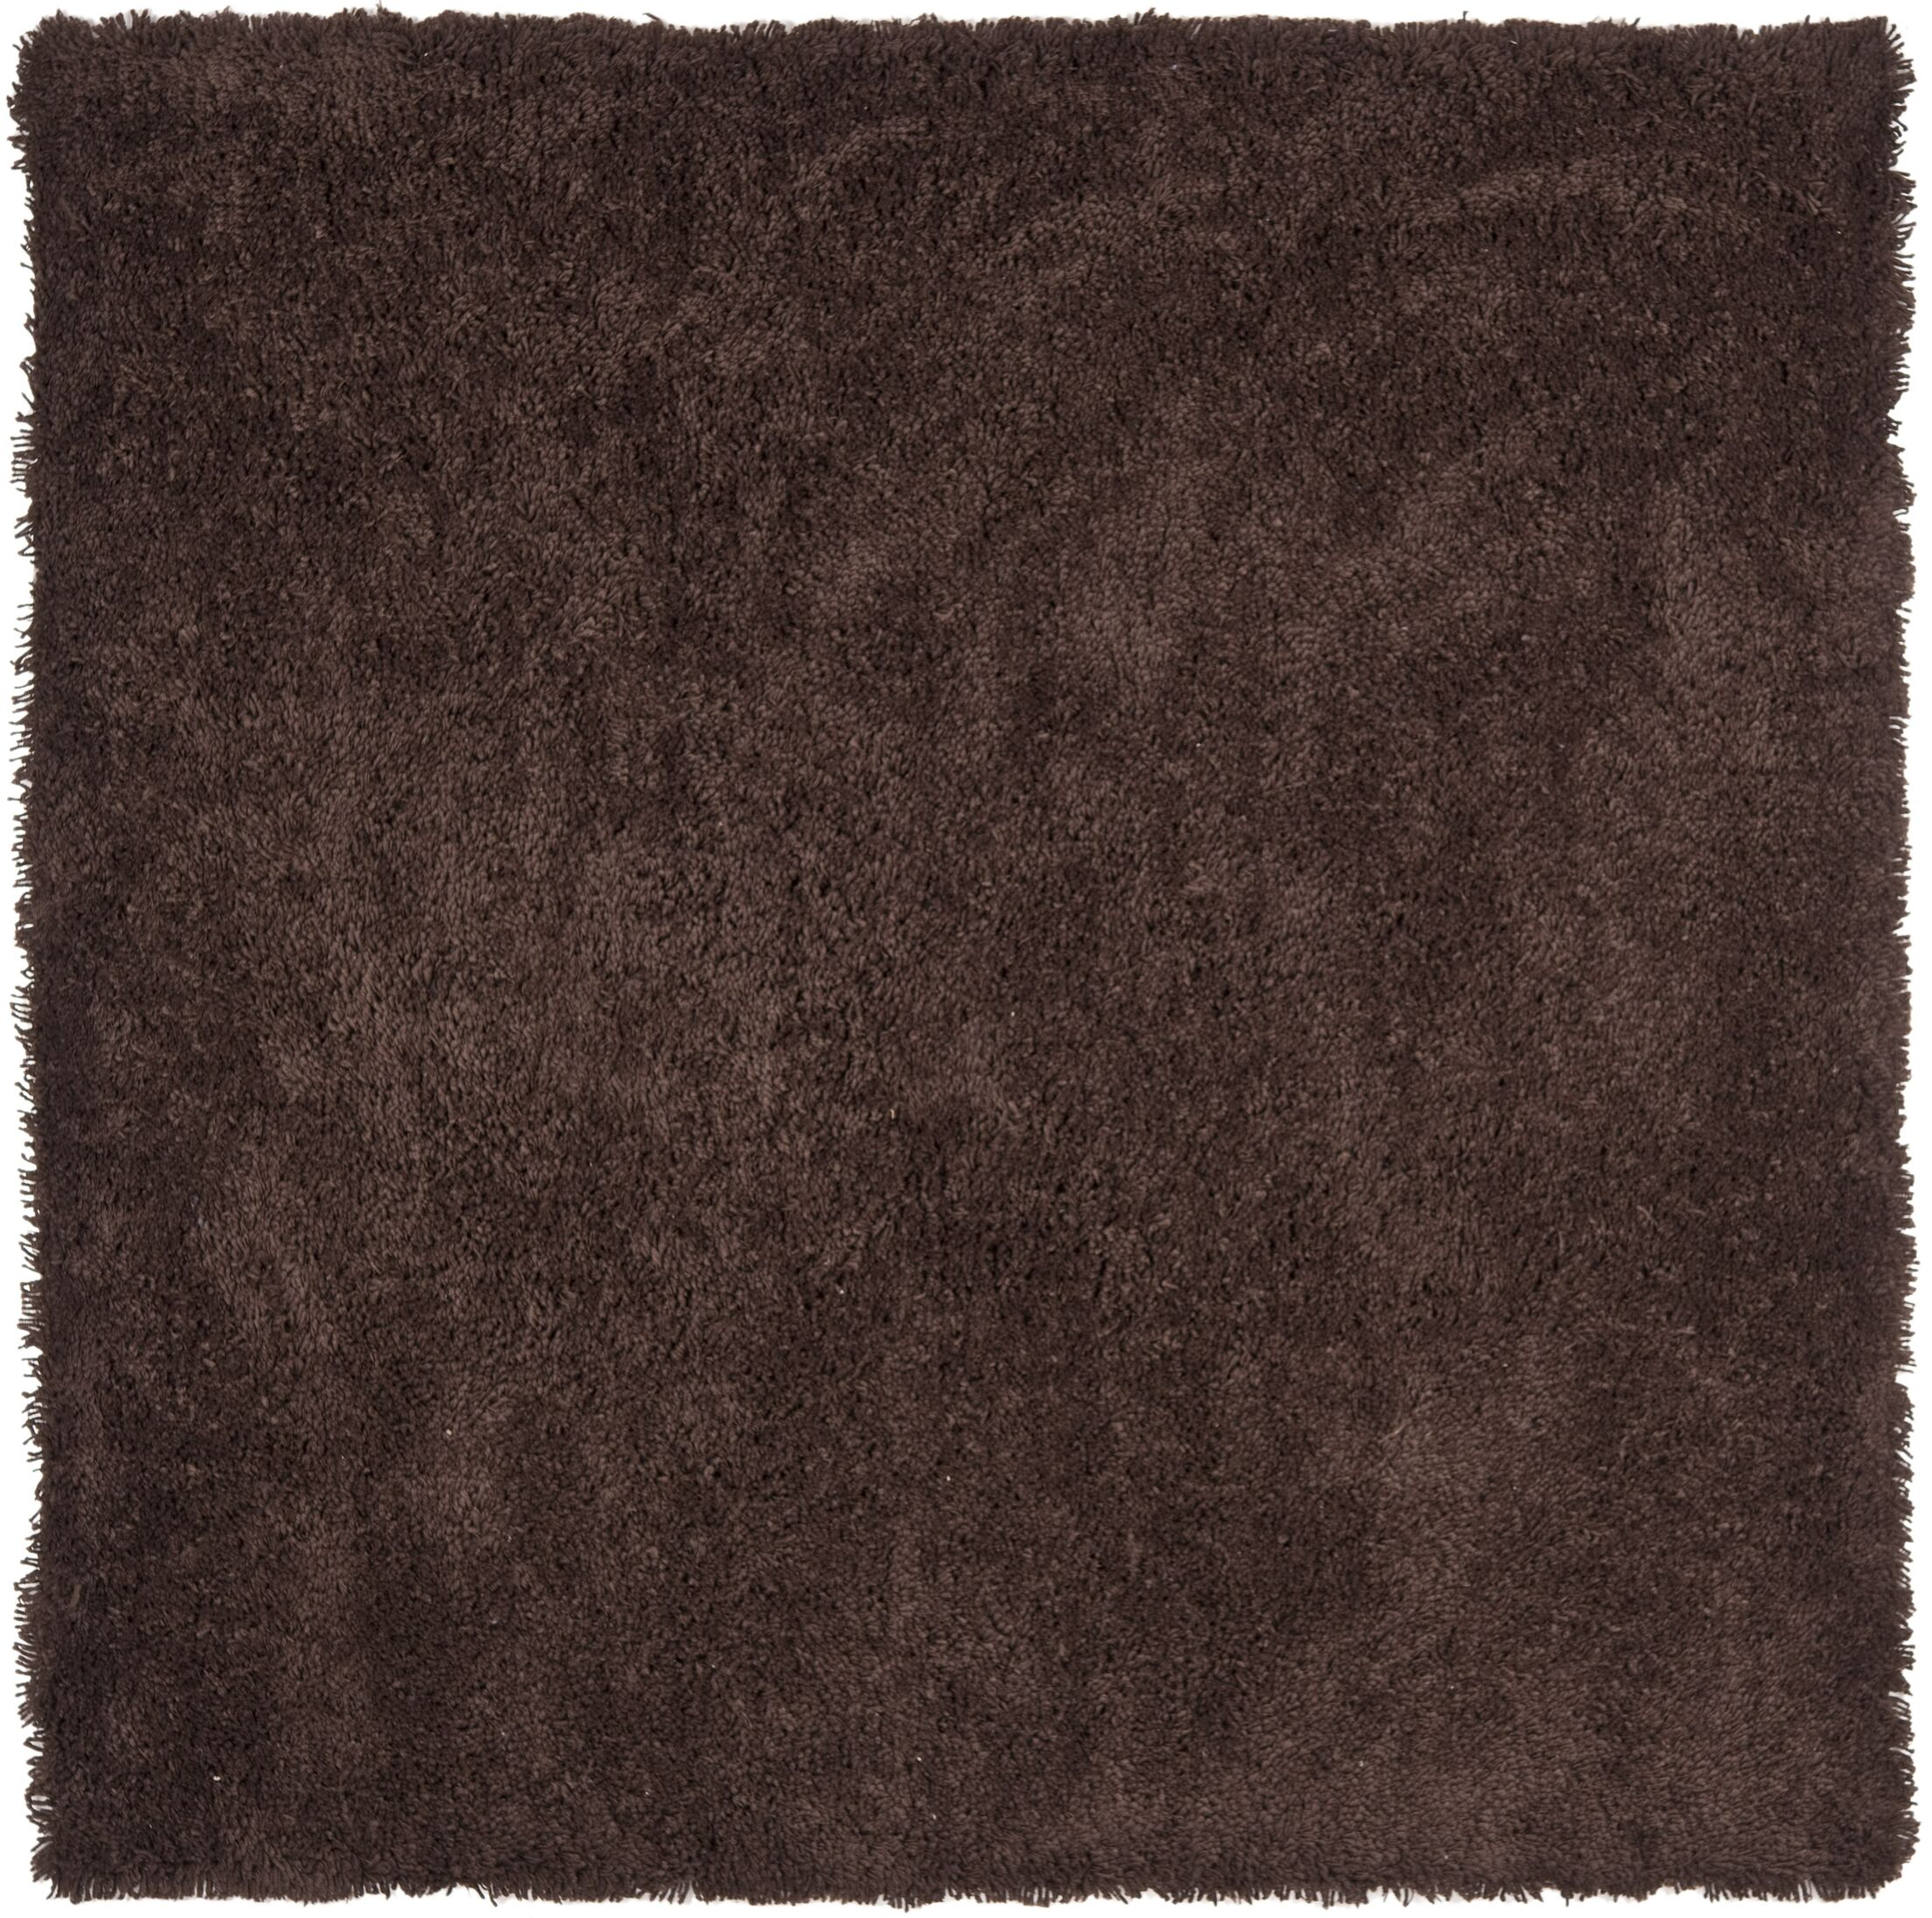 Starr Hill Modern Chocolate Area Rug Rug Size: Square 7'